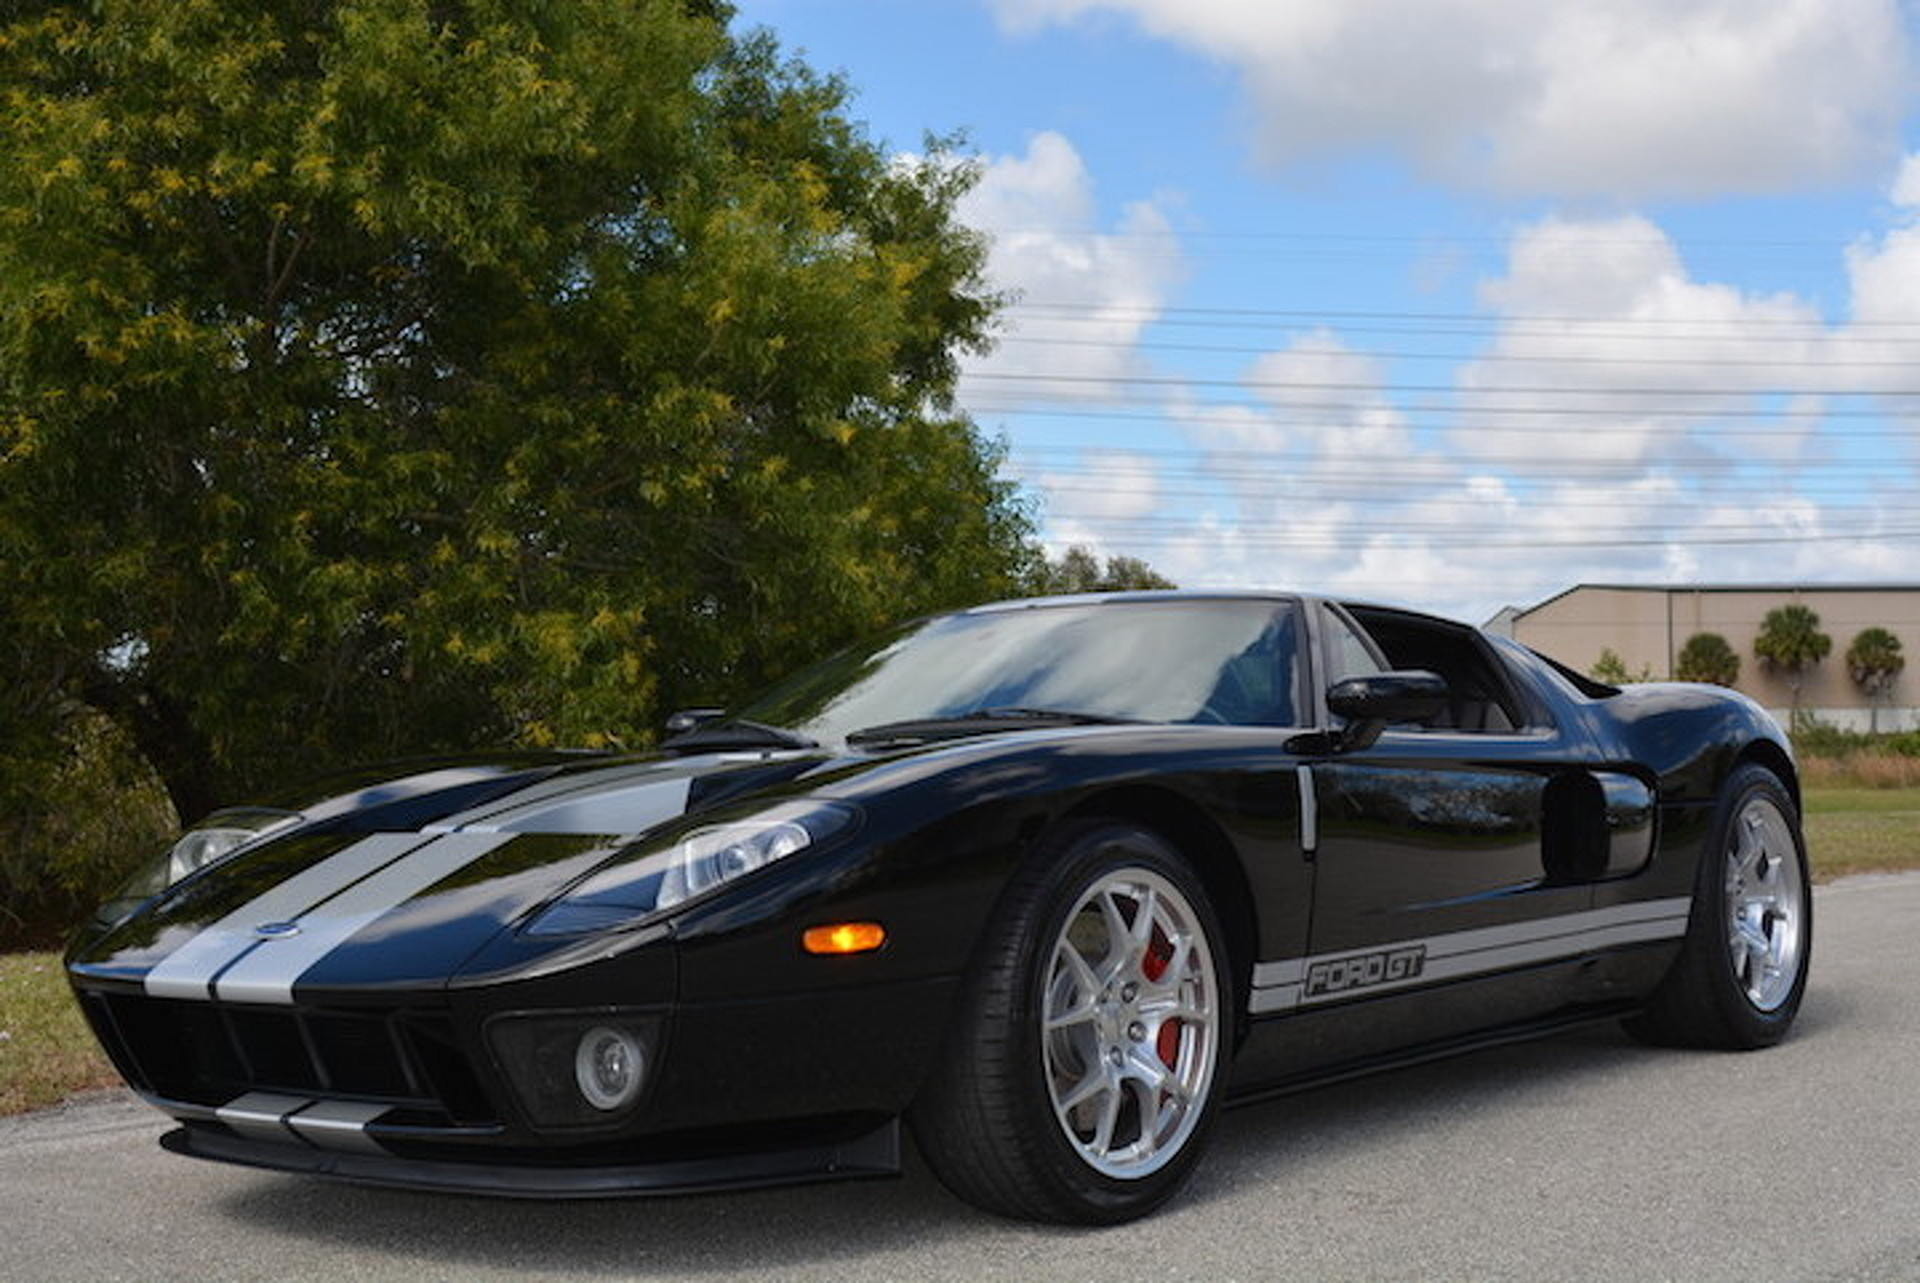 Pristine  Ford Gt Or Hp Lamborghini Murcielago Which Would You Buy